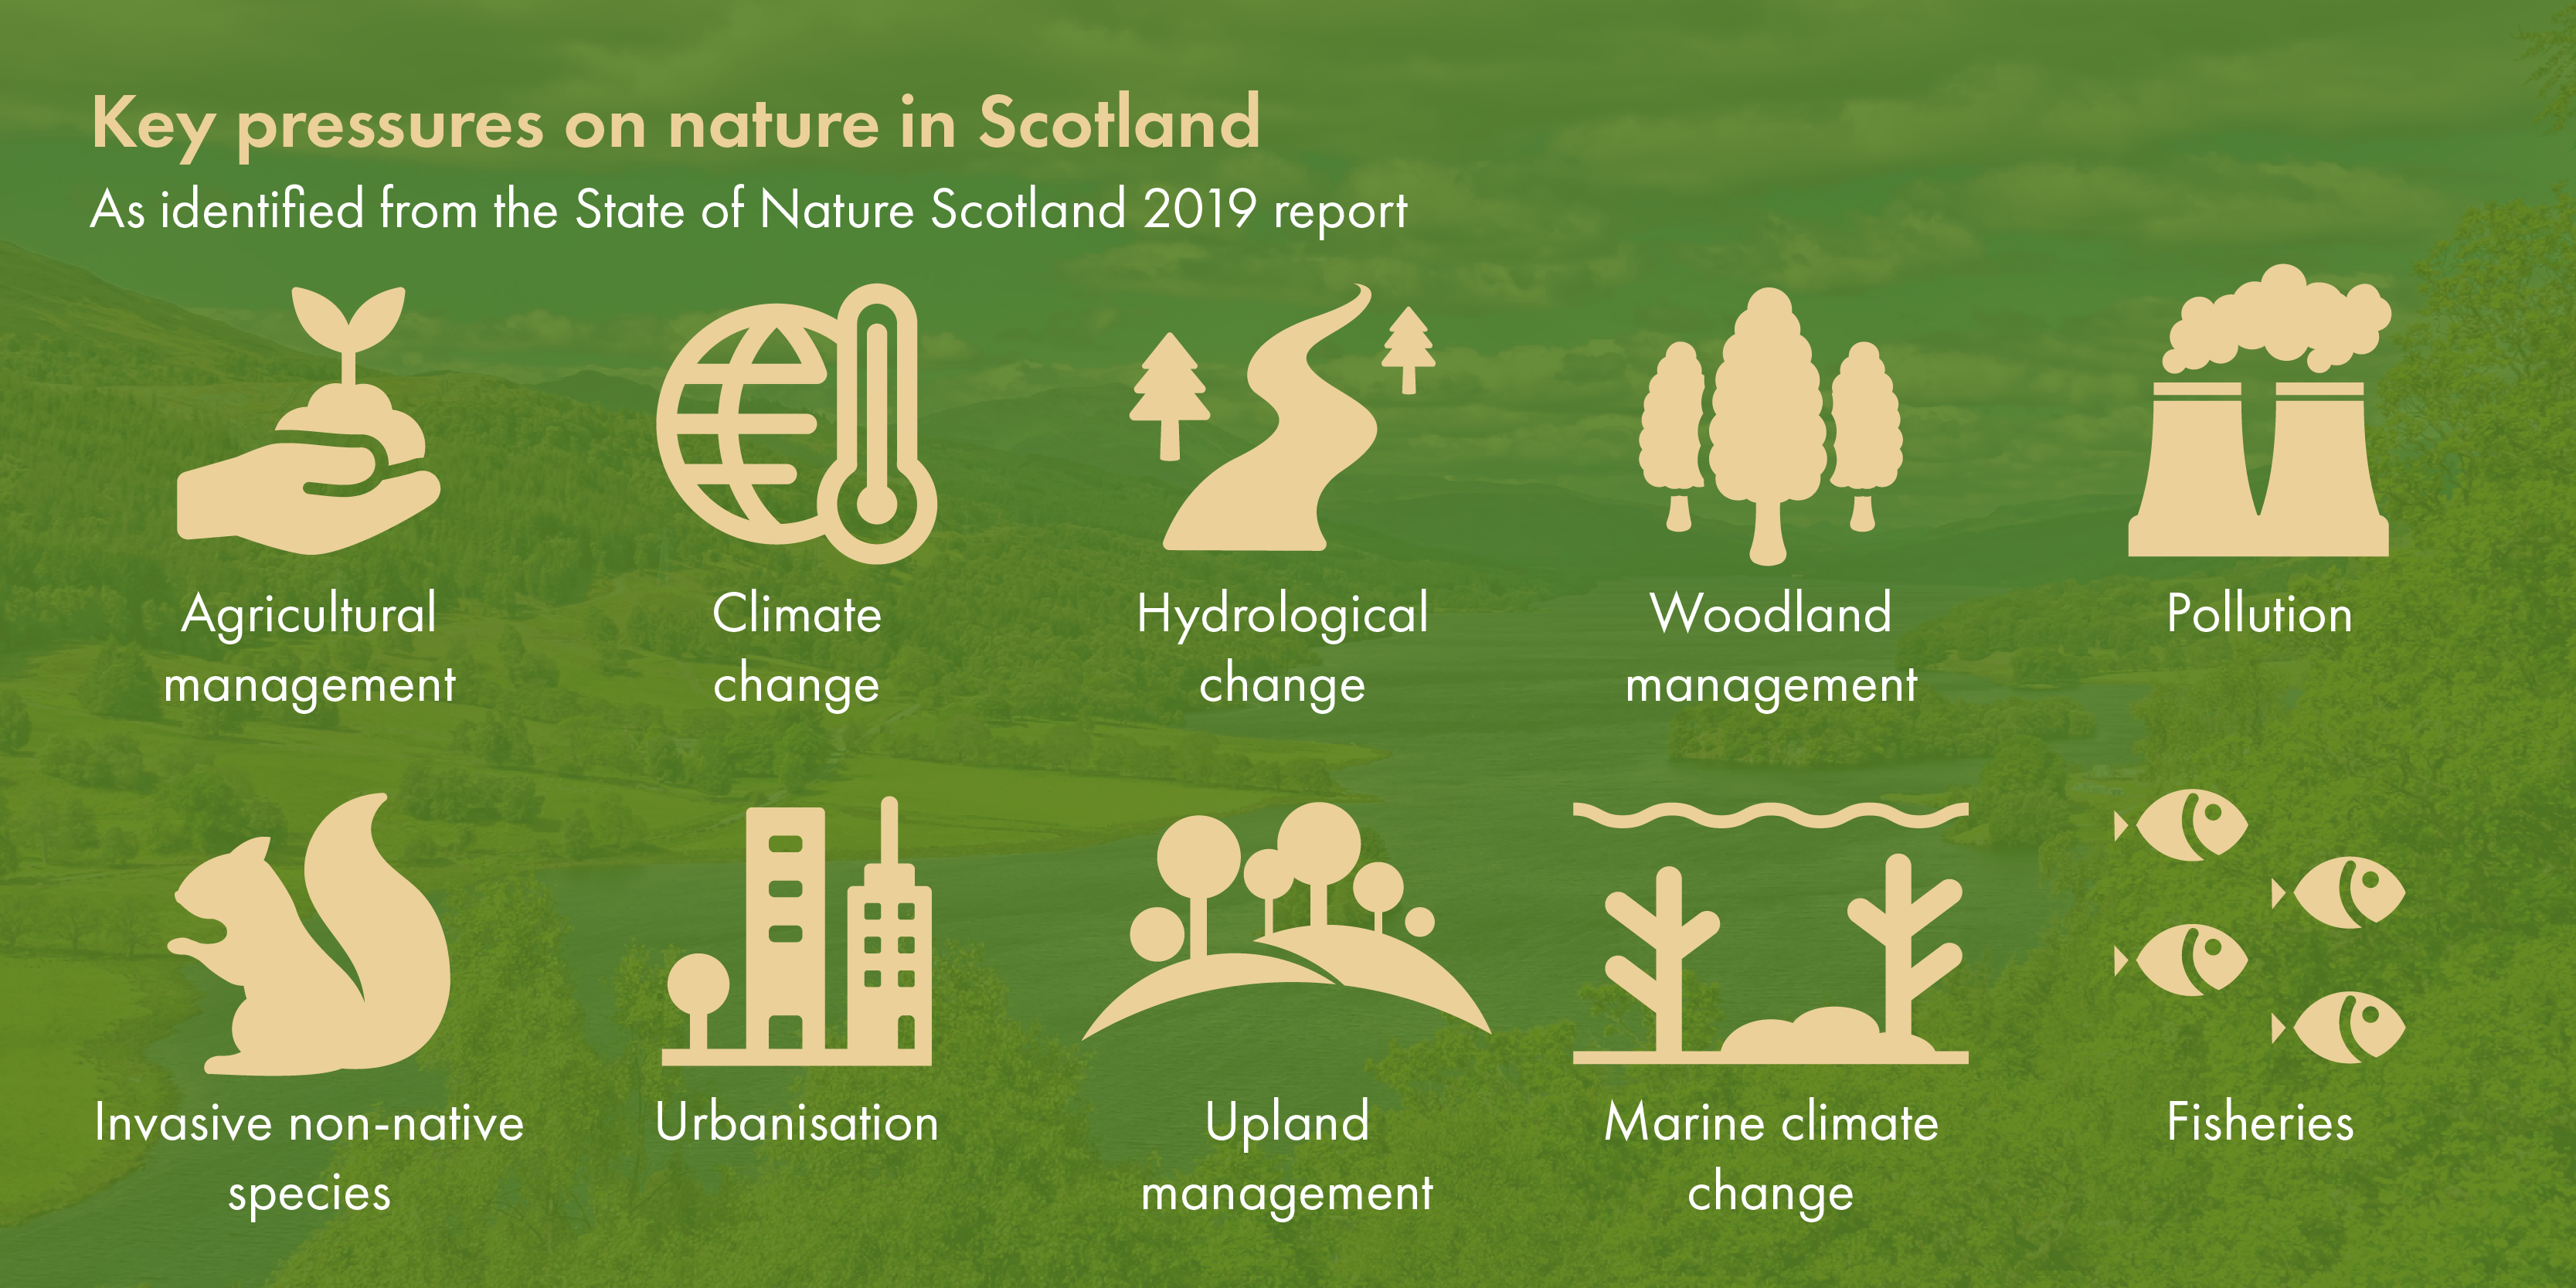 Infographic showing key pressures on nature in Scotland from the State of Nature Scotland 2019 report: agricultural management, climate change, hydrological change, woodland management, pollution, invasive non-native species, urbanisation, upland management, marine climate change, fisheries.